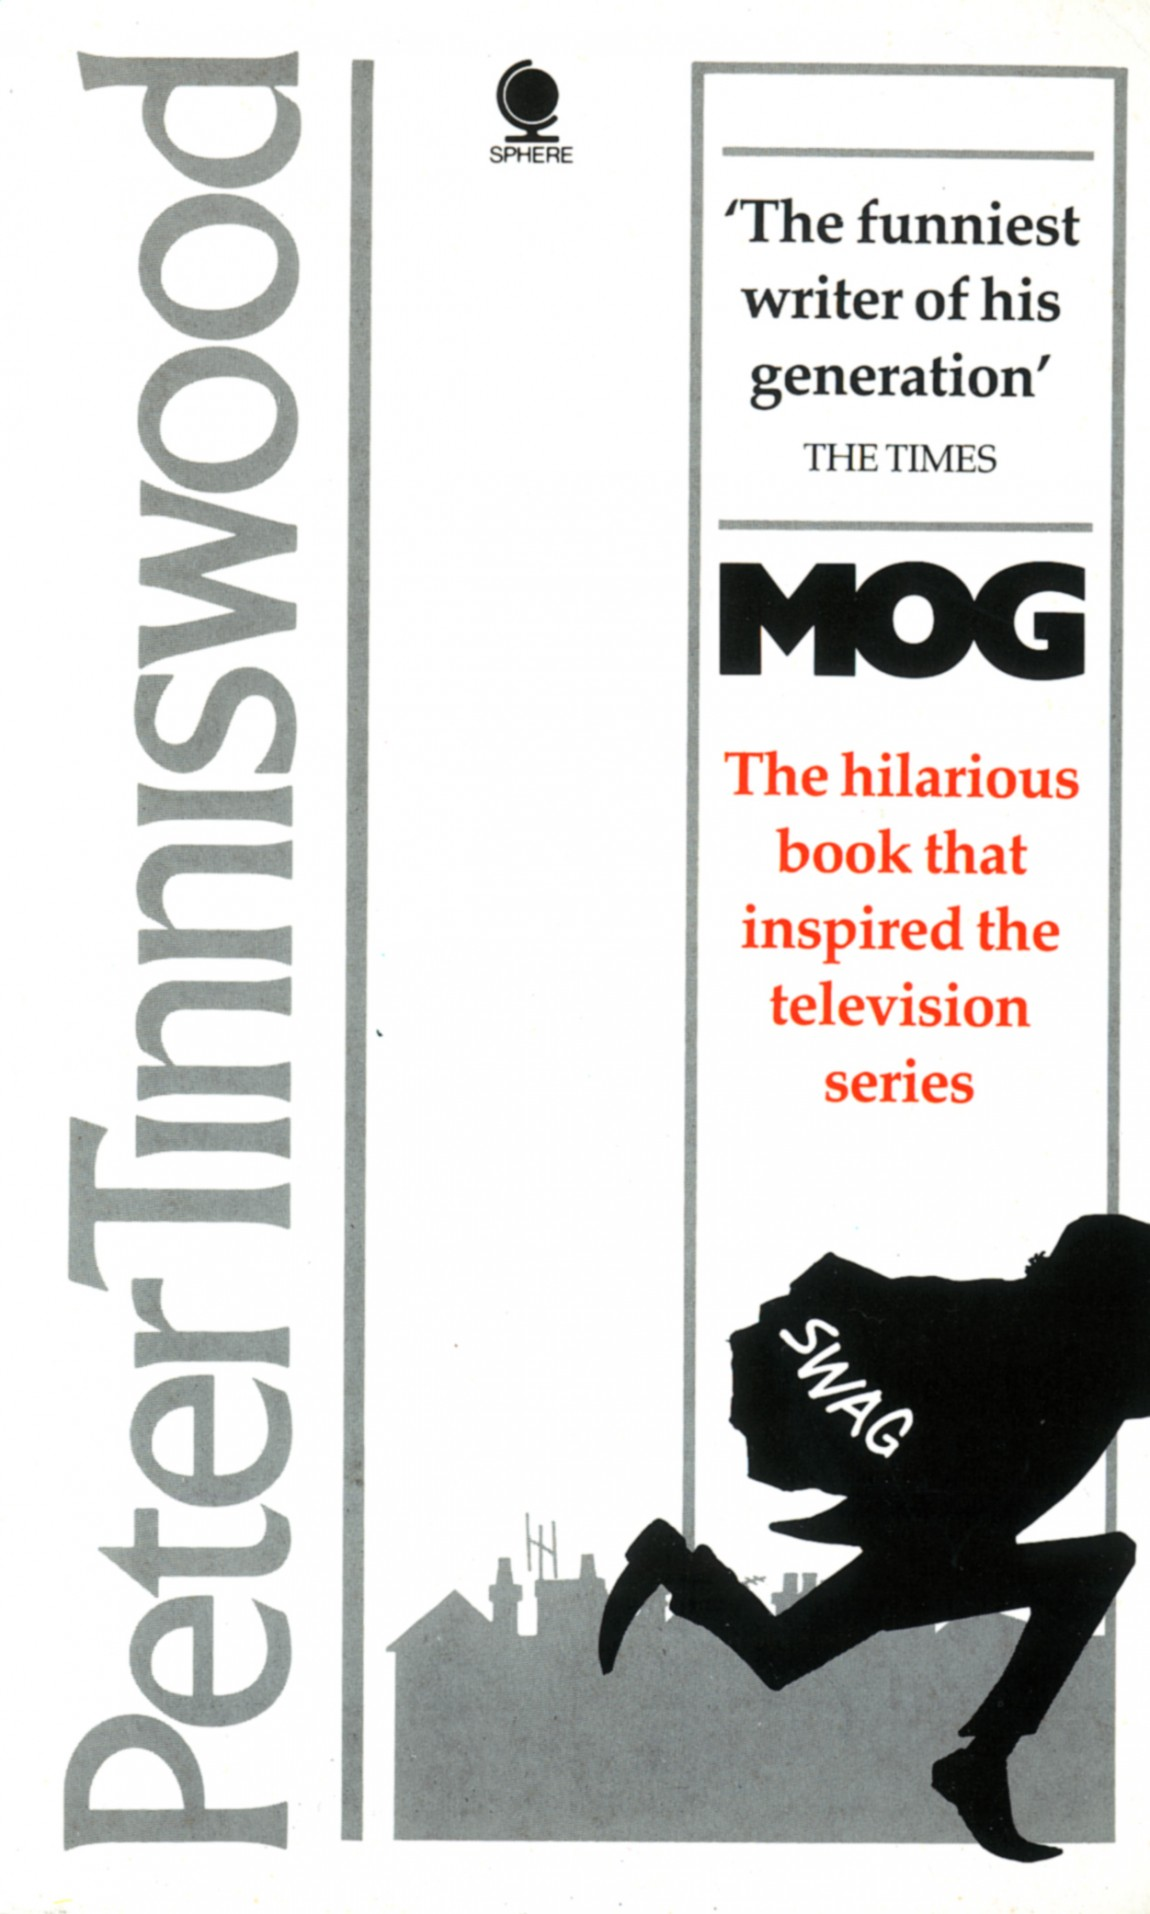 Cover design and illustration for Mog by Peter Tinniswood